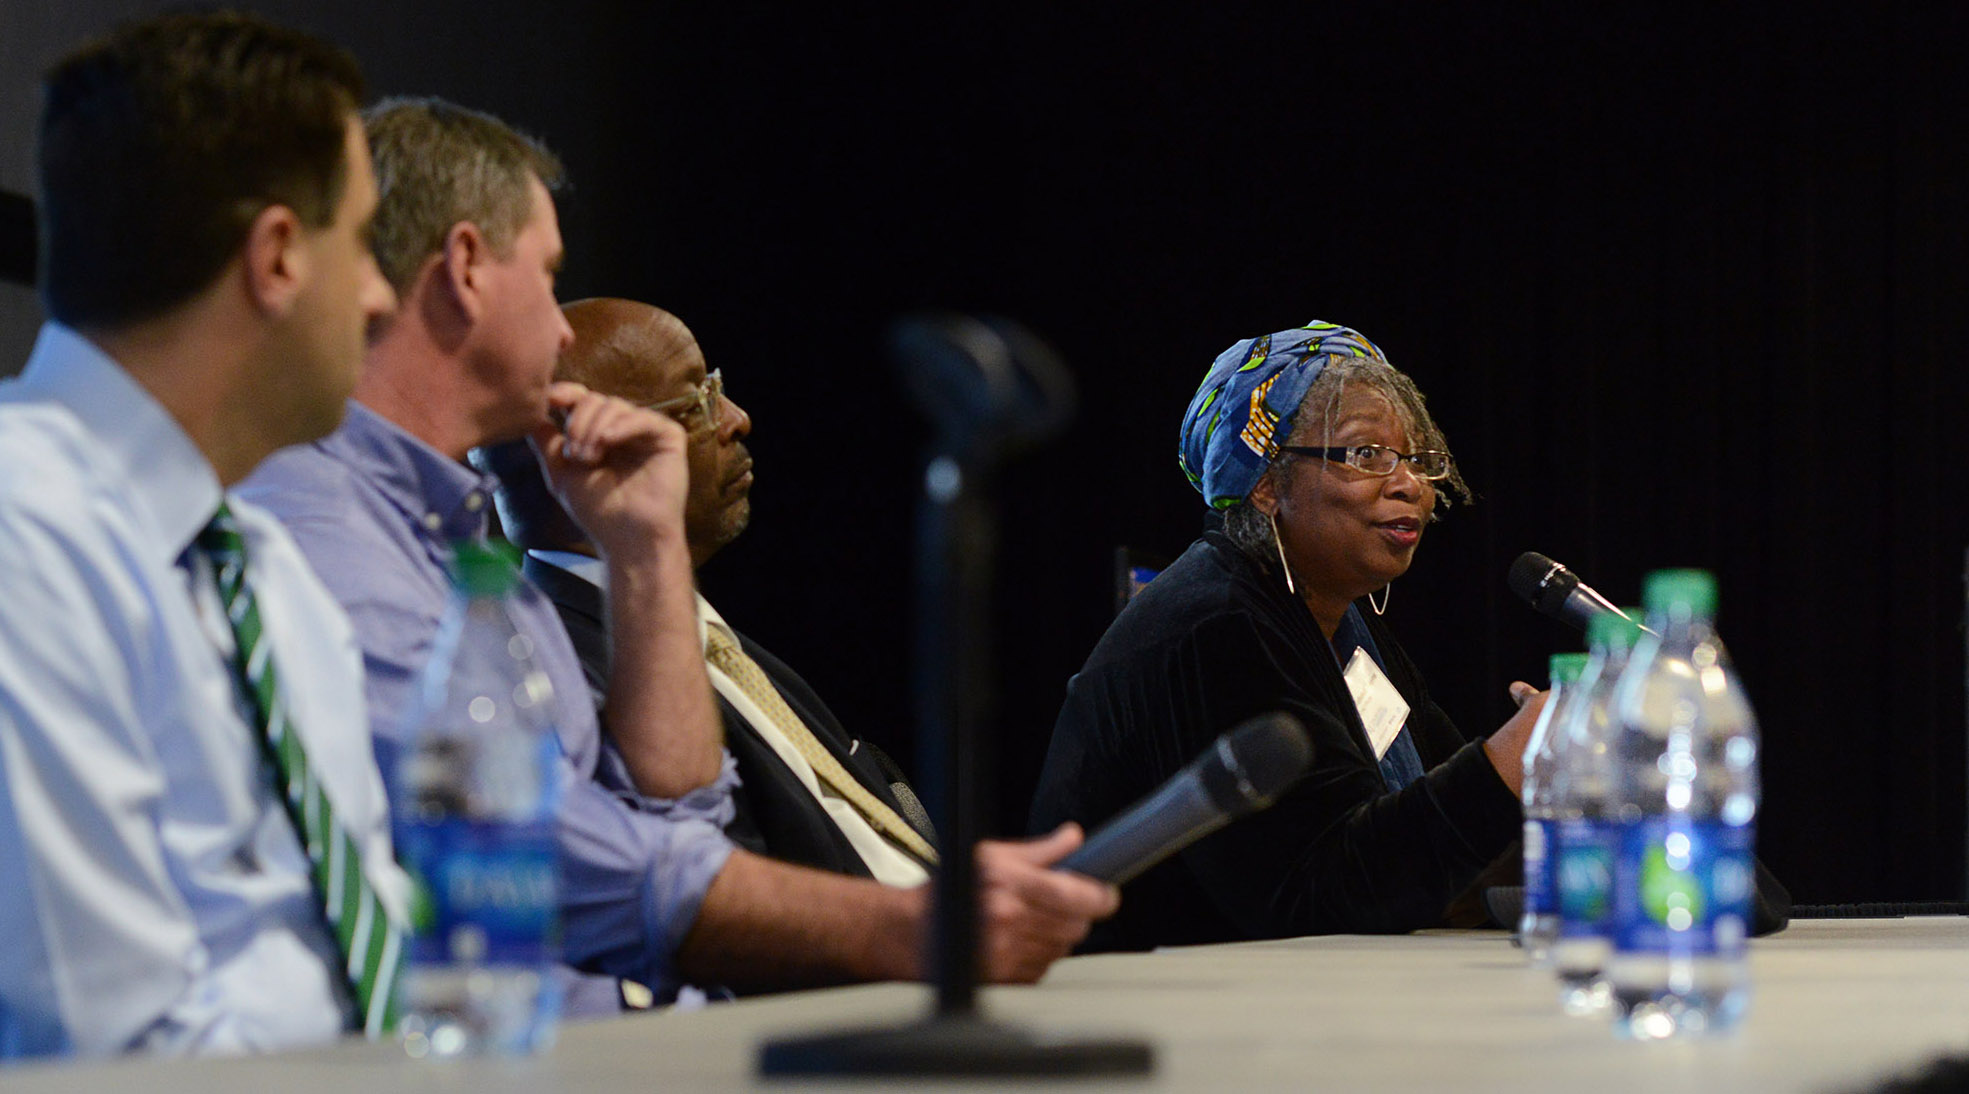 Hakima Payne speaks during the 2019 Frontiers Research Day panel session.